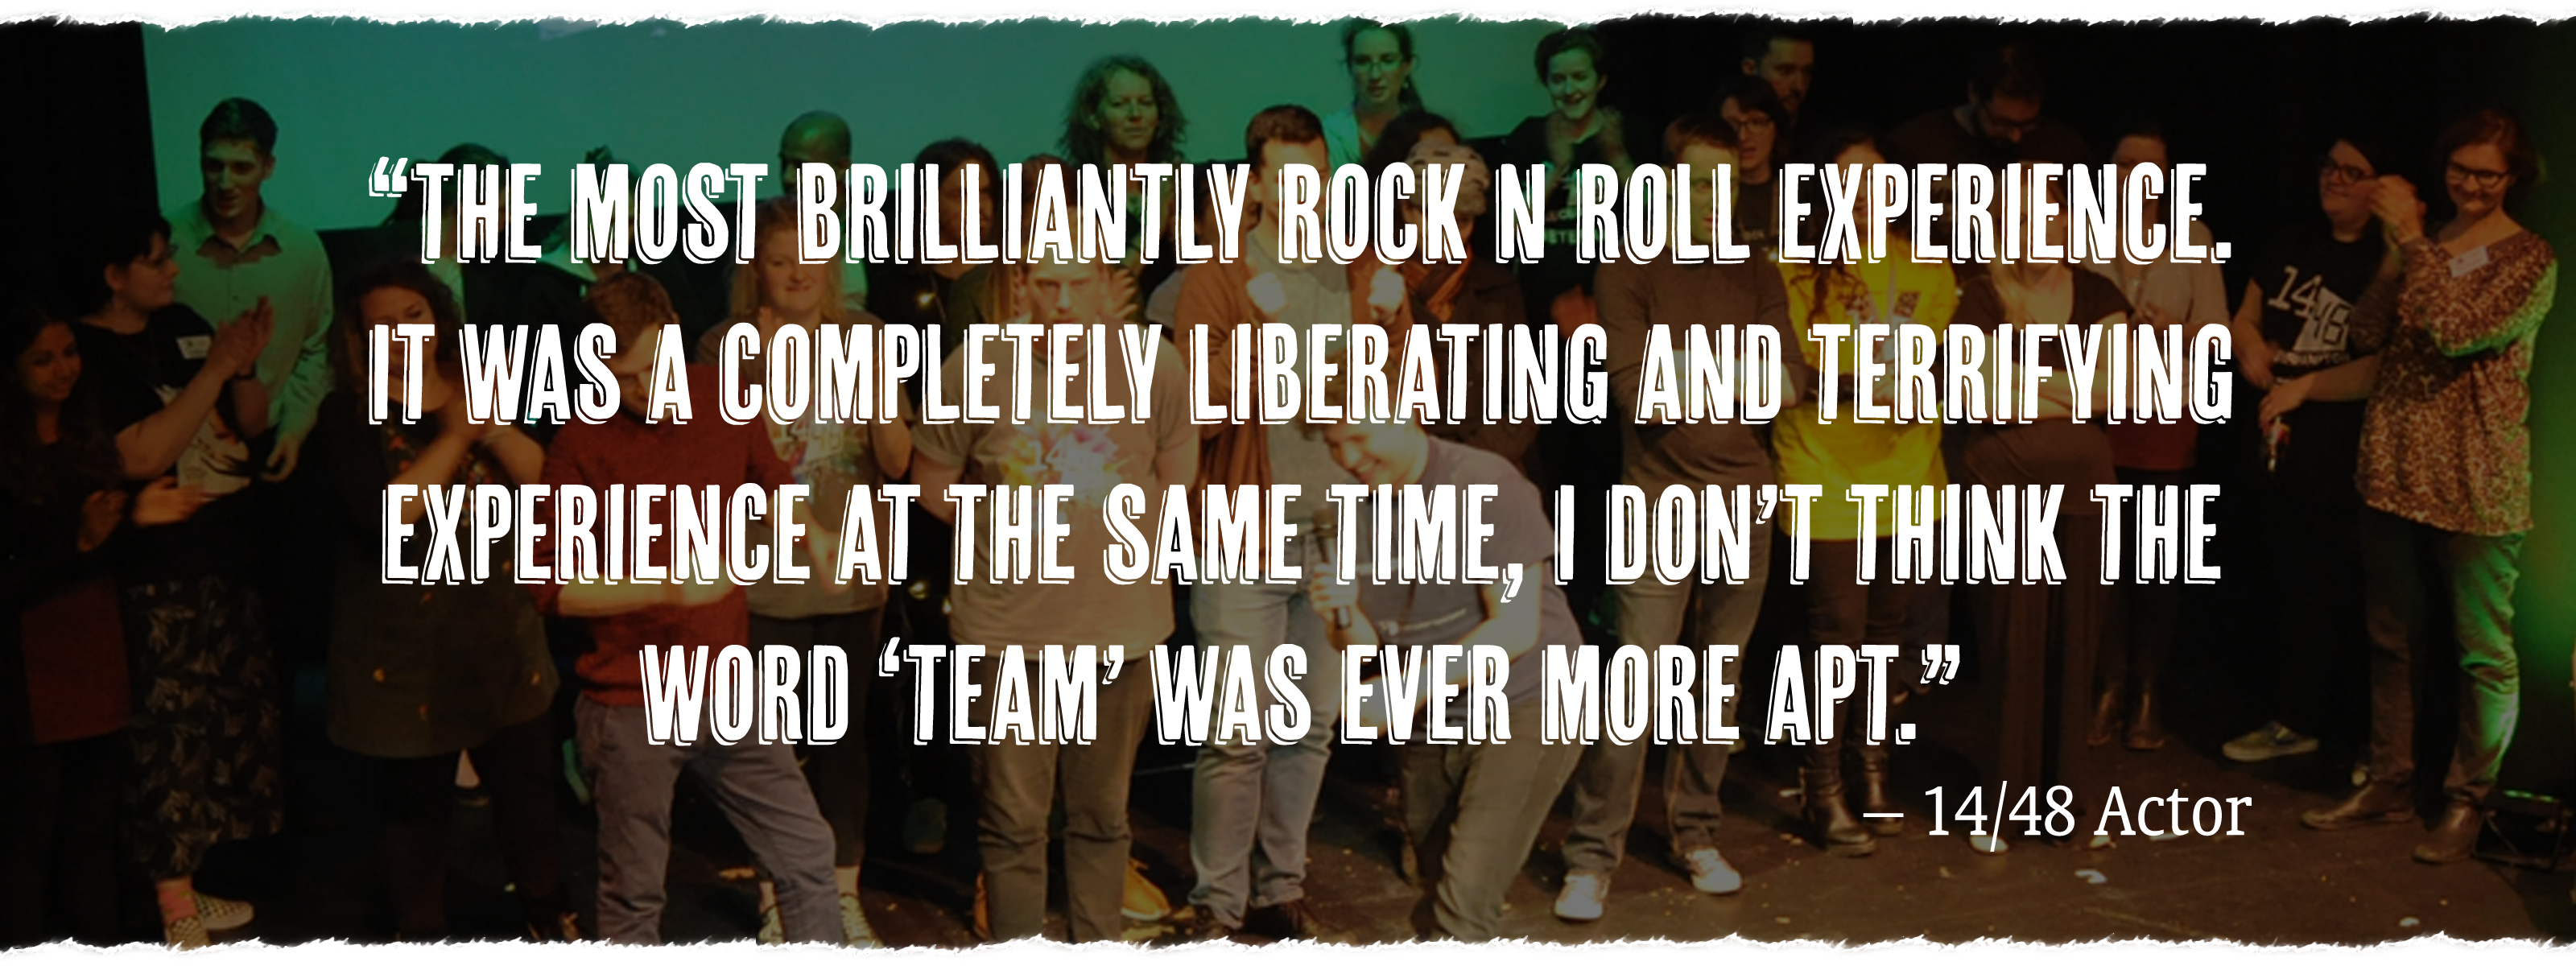 """""""The most brilliantly rock n roll experience. It was a completely liberating and terrifying experience at the same time, I don't think the word 'team' was ever more apt."""" - 14/48 Actor"""